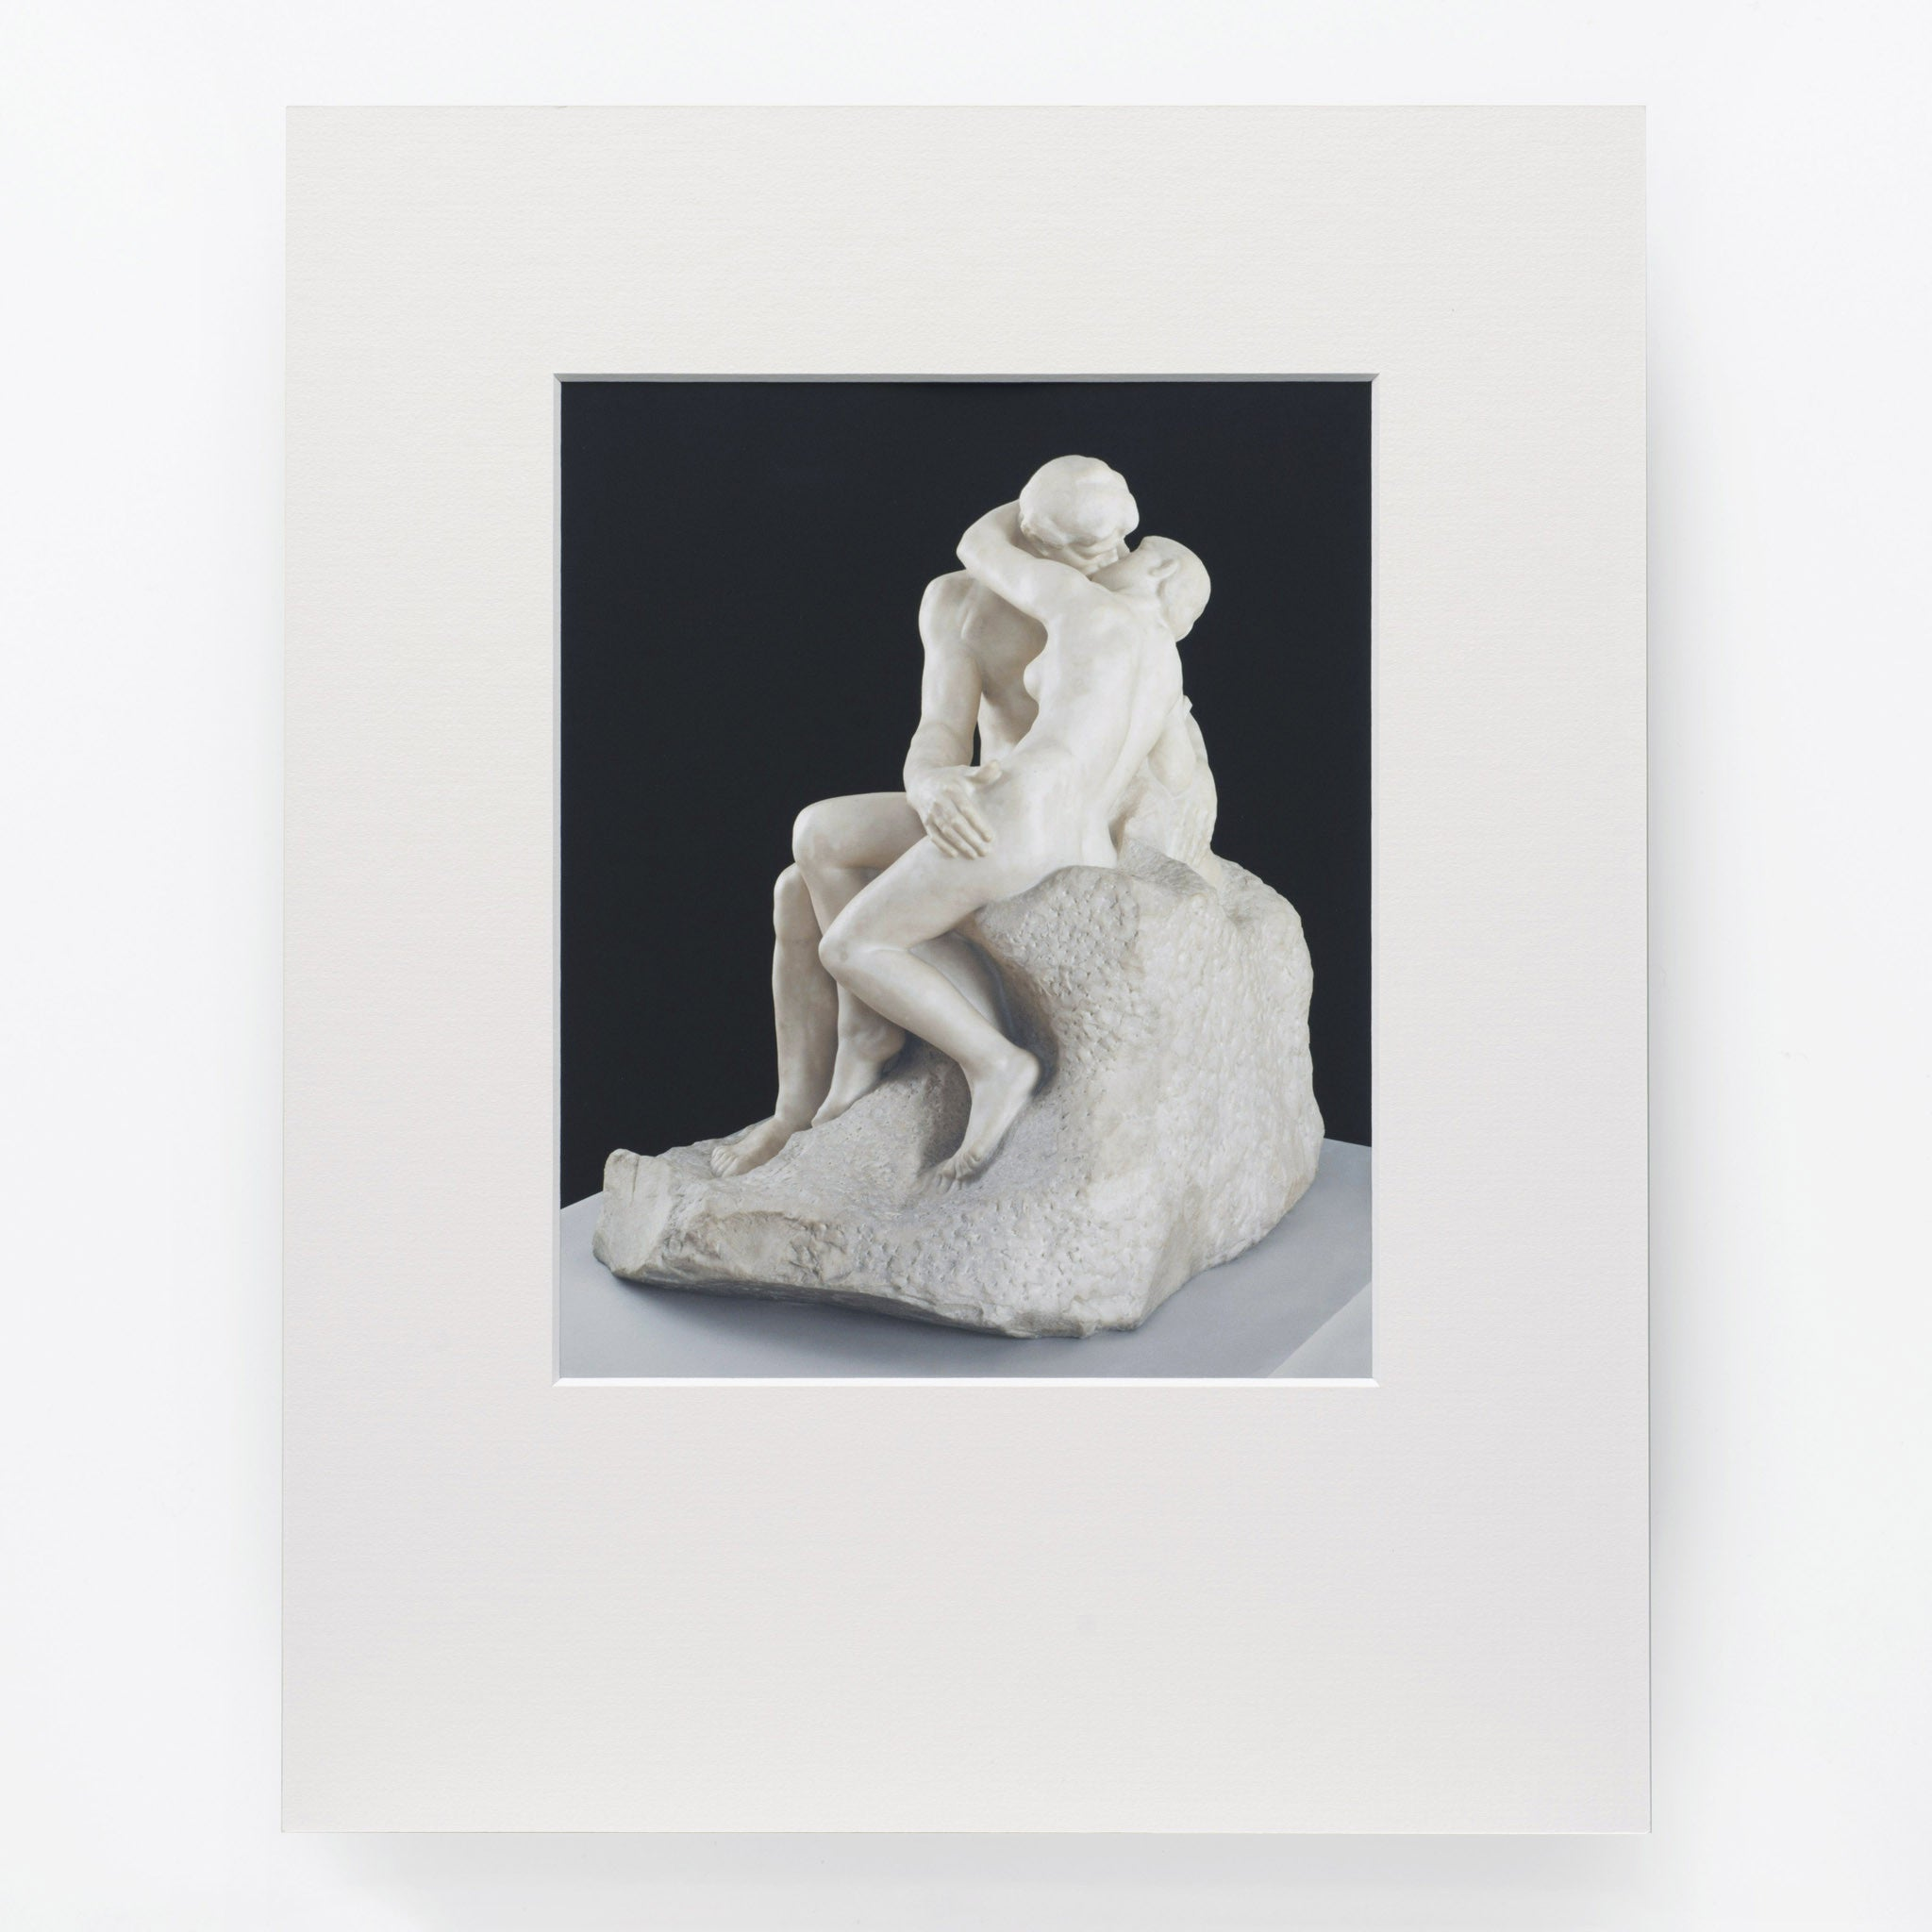 Auguste Rodin 'The Kiss' Print Image